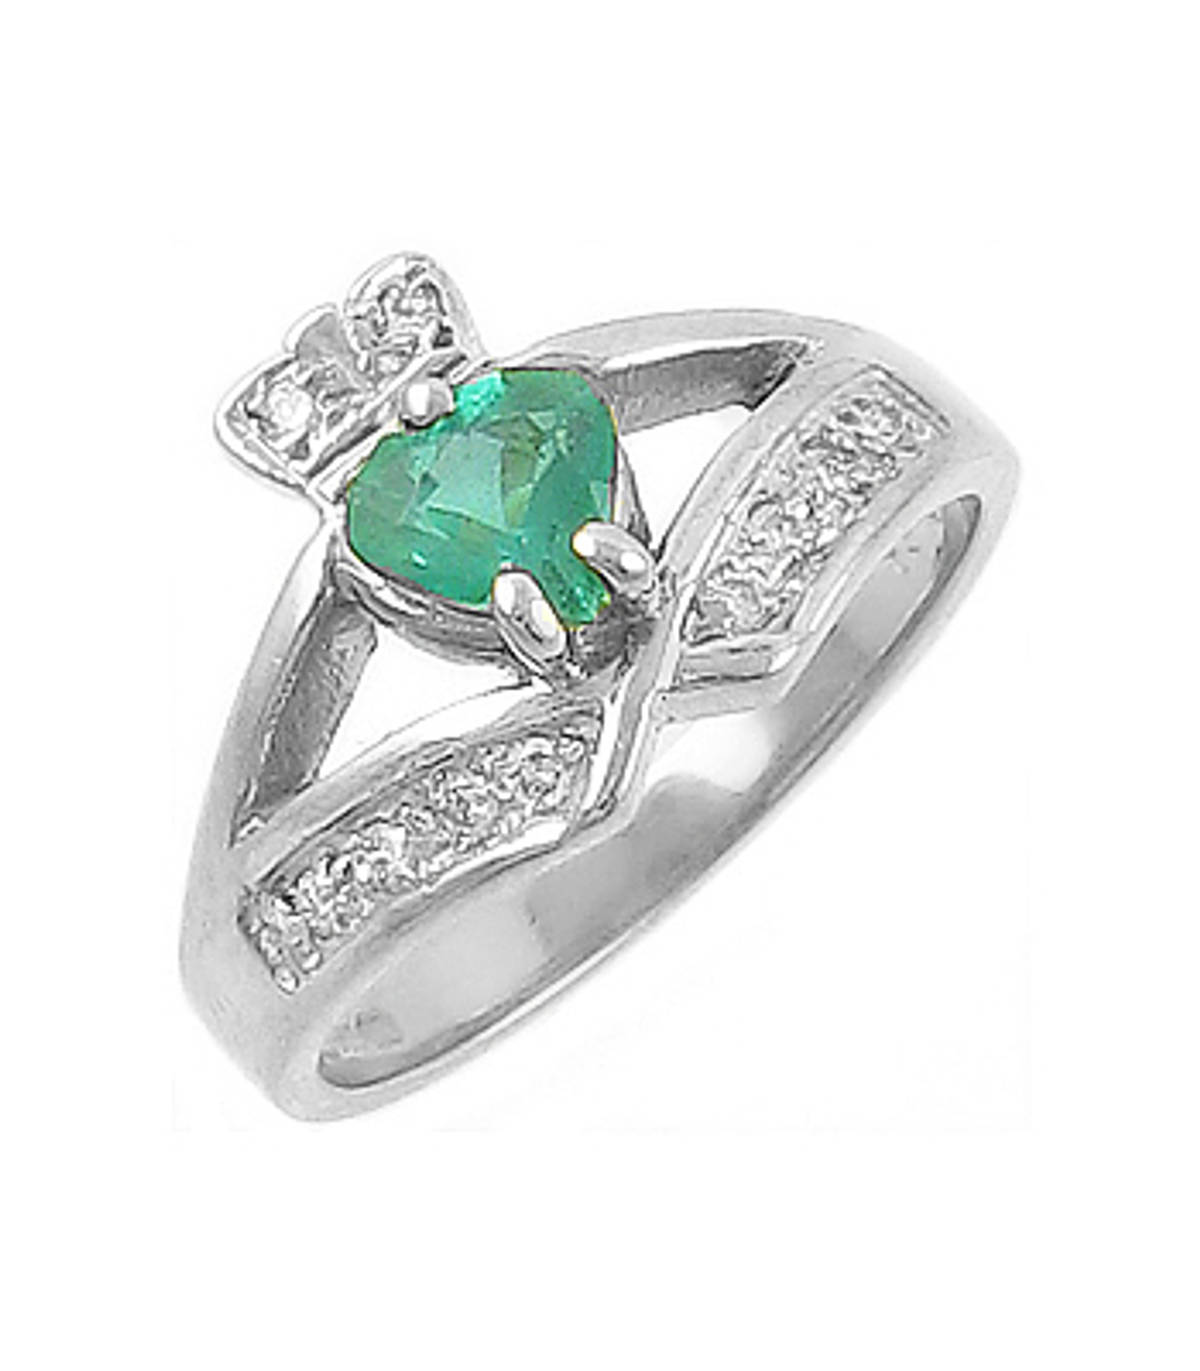 Irish made 14 carat white gold 0.55cts emerald/0.12cts diamonds claddagh engagement ring